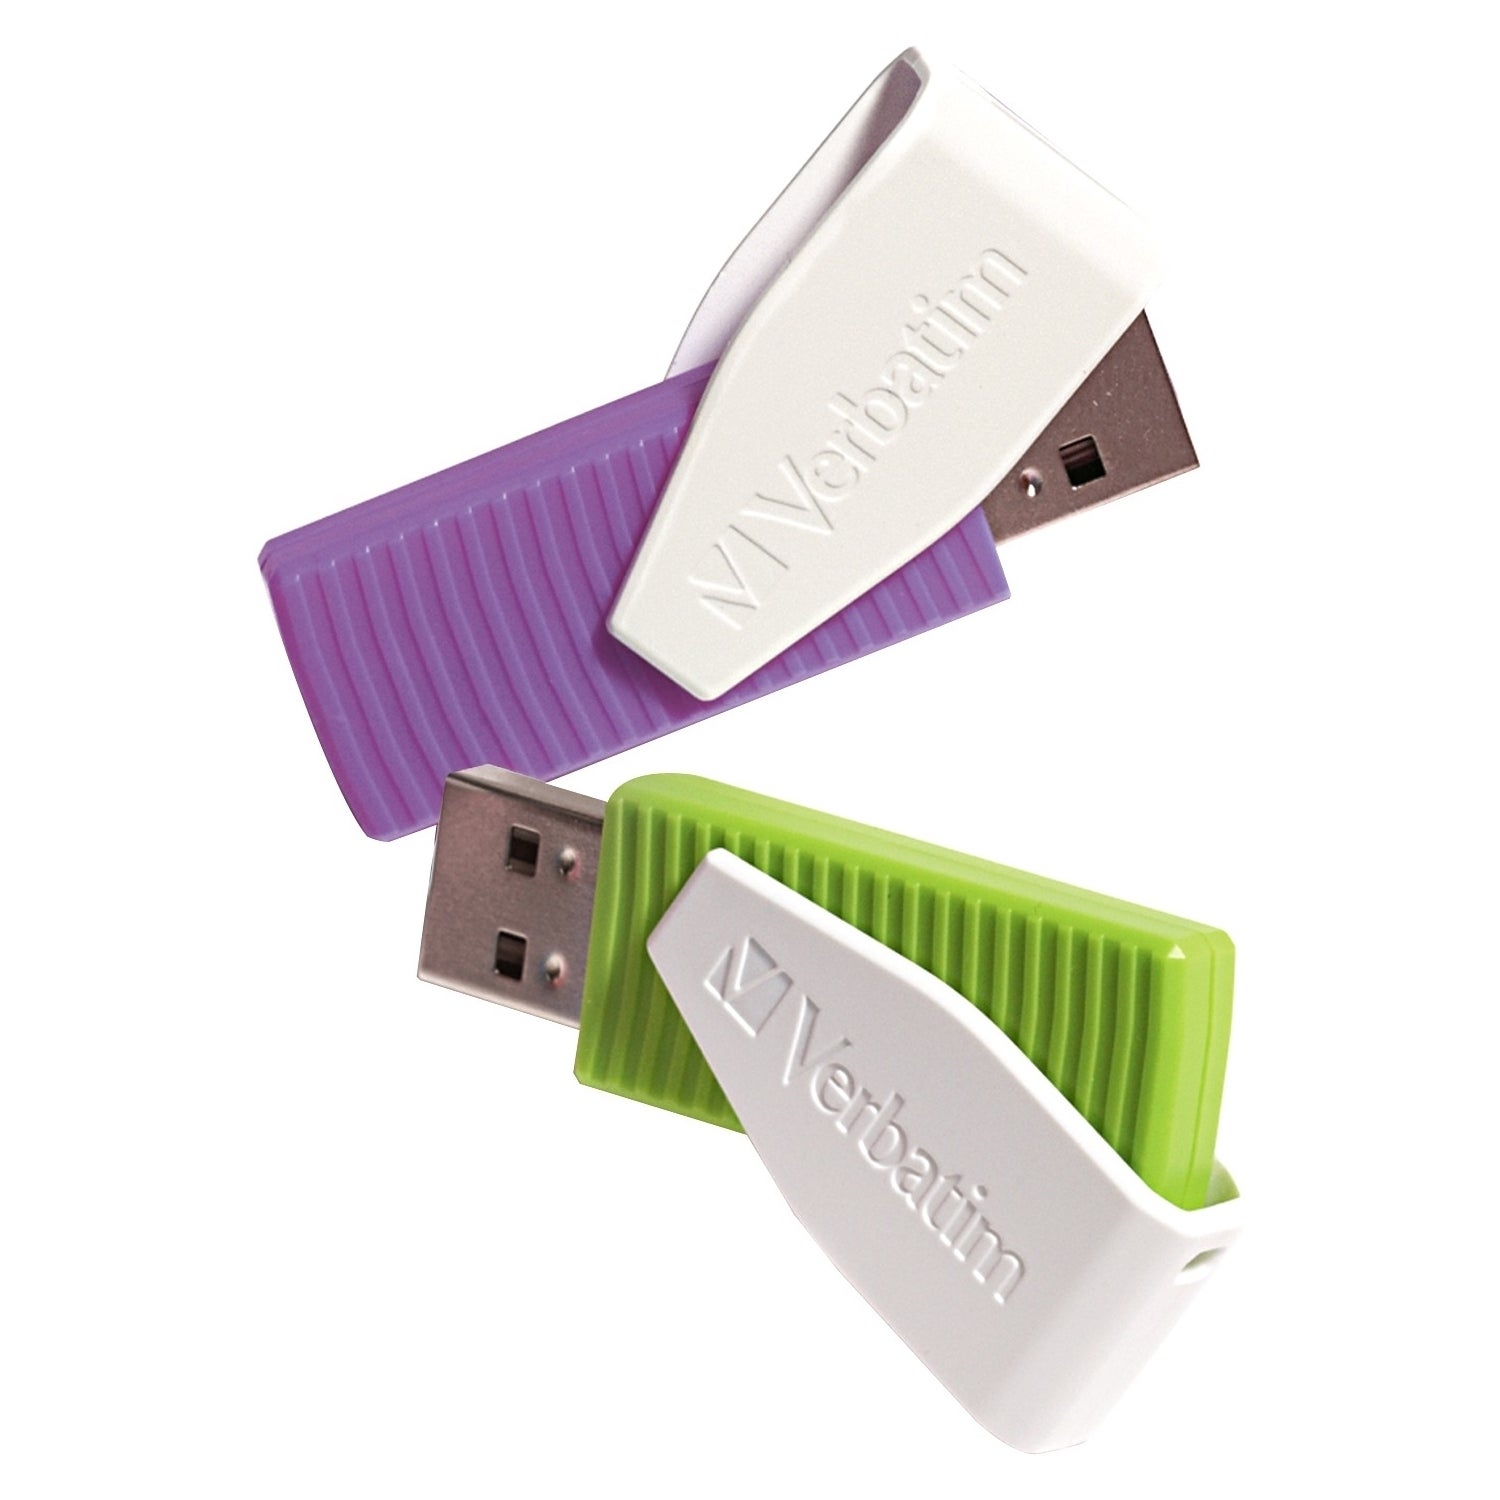 Verbatim 16GB Swivel USB Flash Drive - 2pk - Green, Viole...